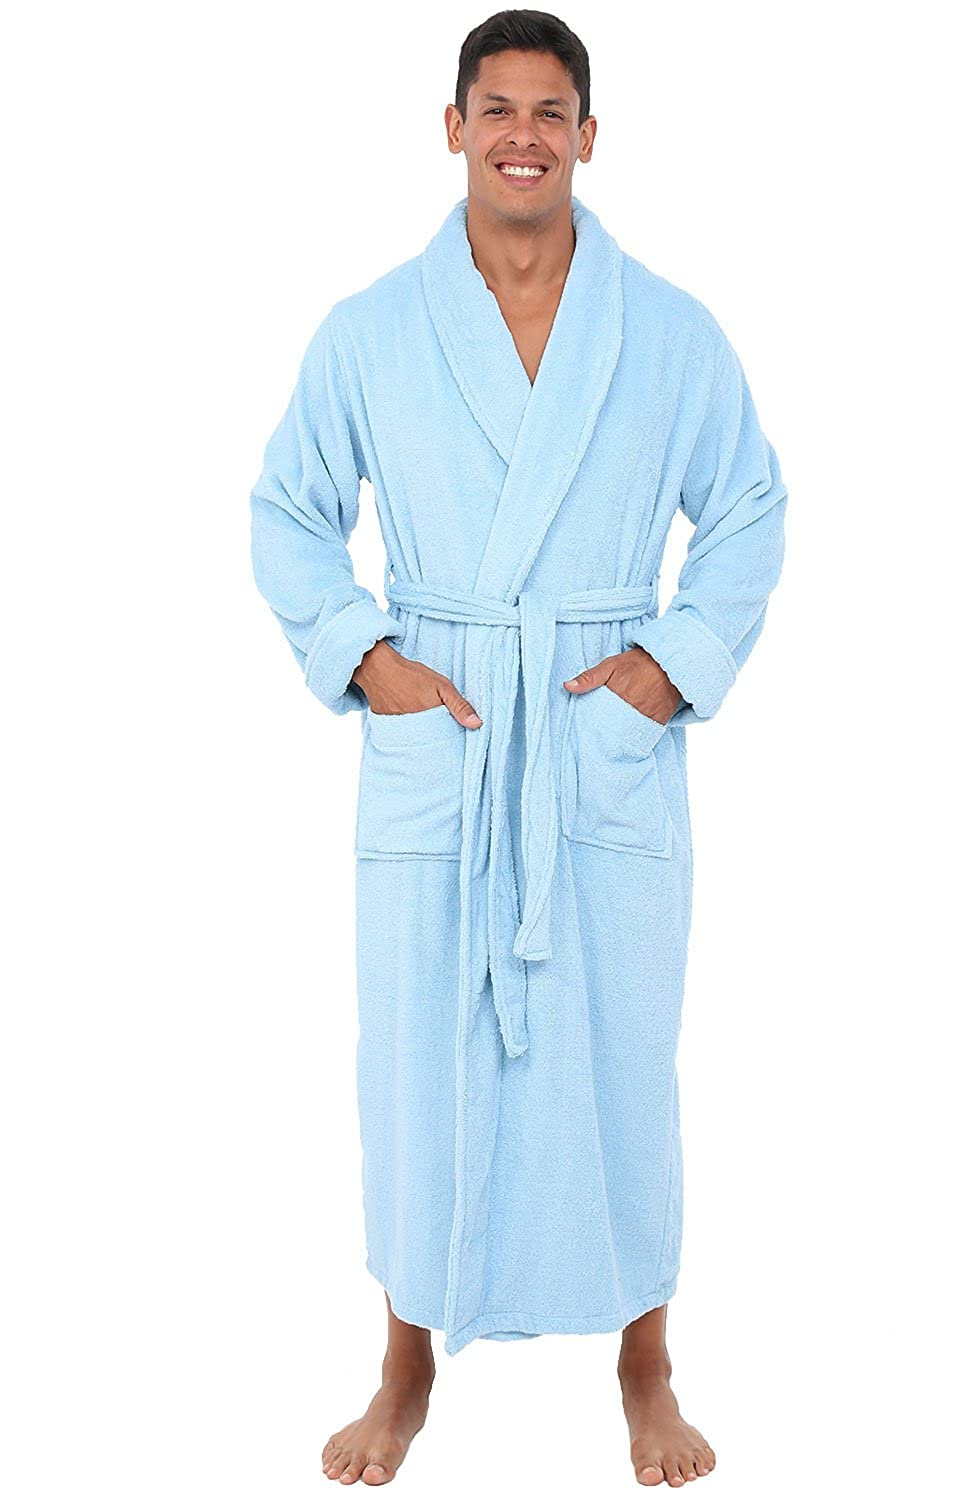 Alexander Del Rossa Mens Turkish Terry Cloth Robe, Long Cotton Bathrobe A0126-MEN